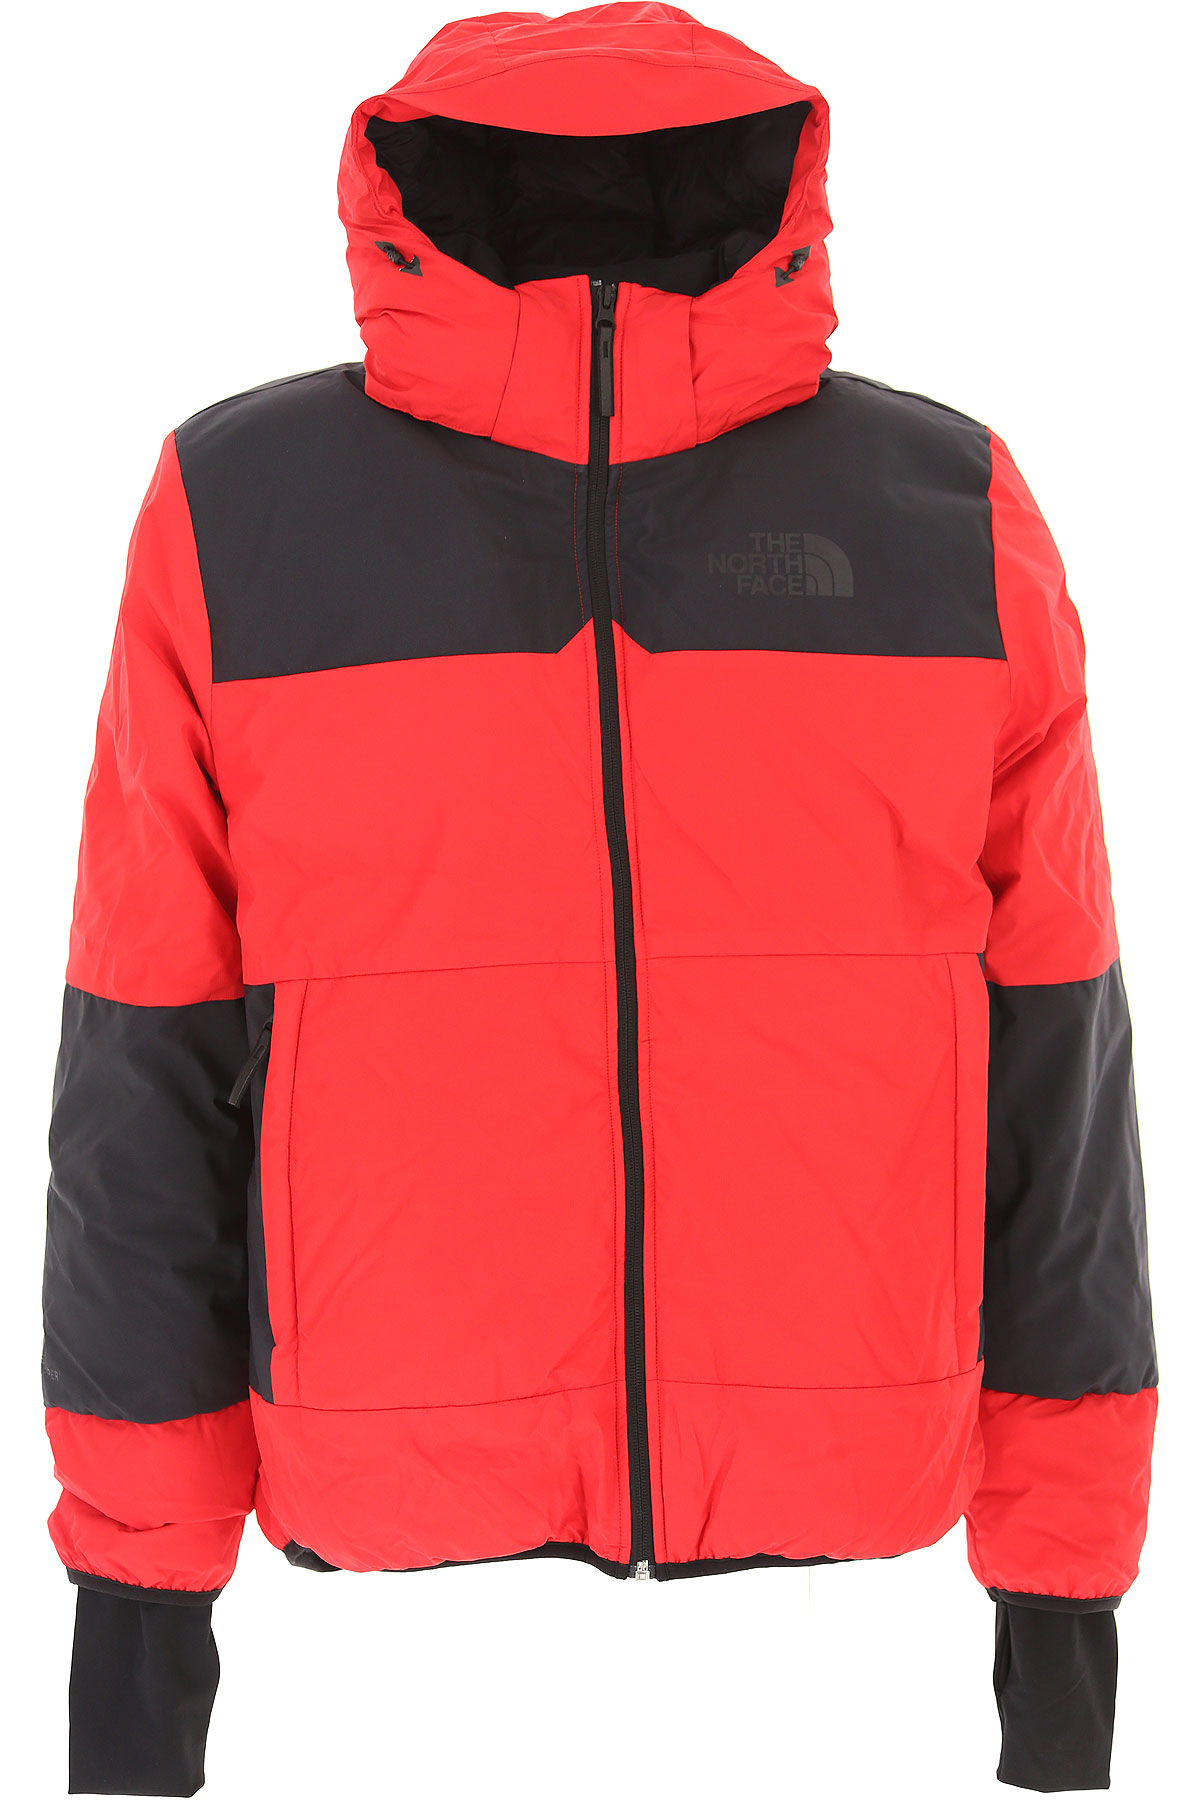 Image of The North Face Down Jacket for Men, Puffer Ski Jacket On Sale, Red, polyamide, 2017, L M S